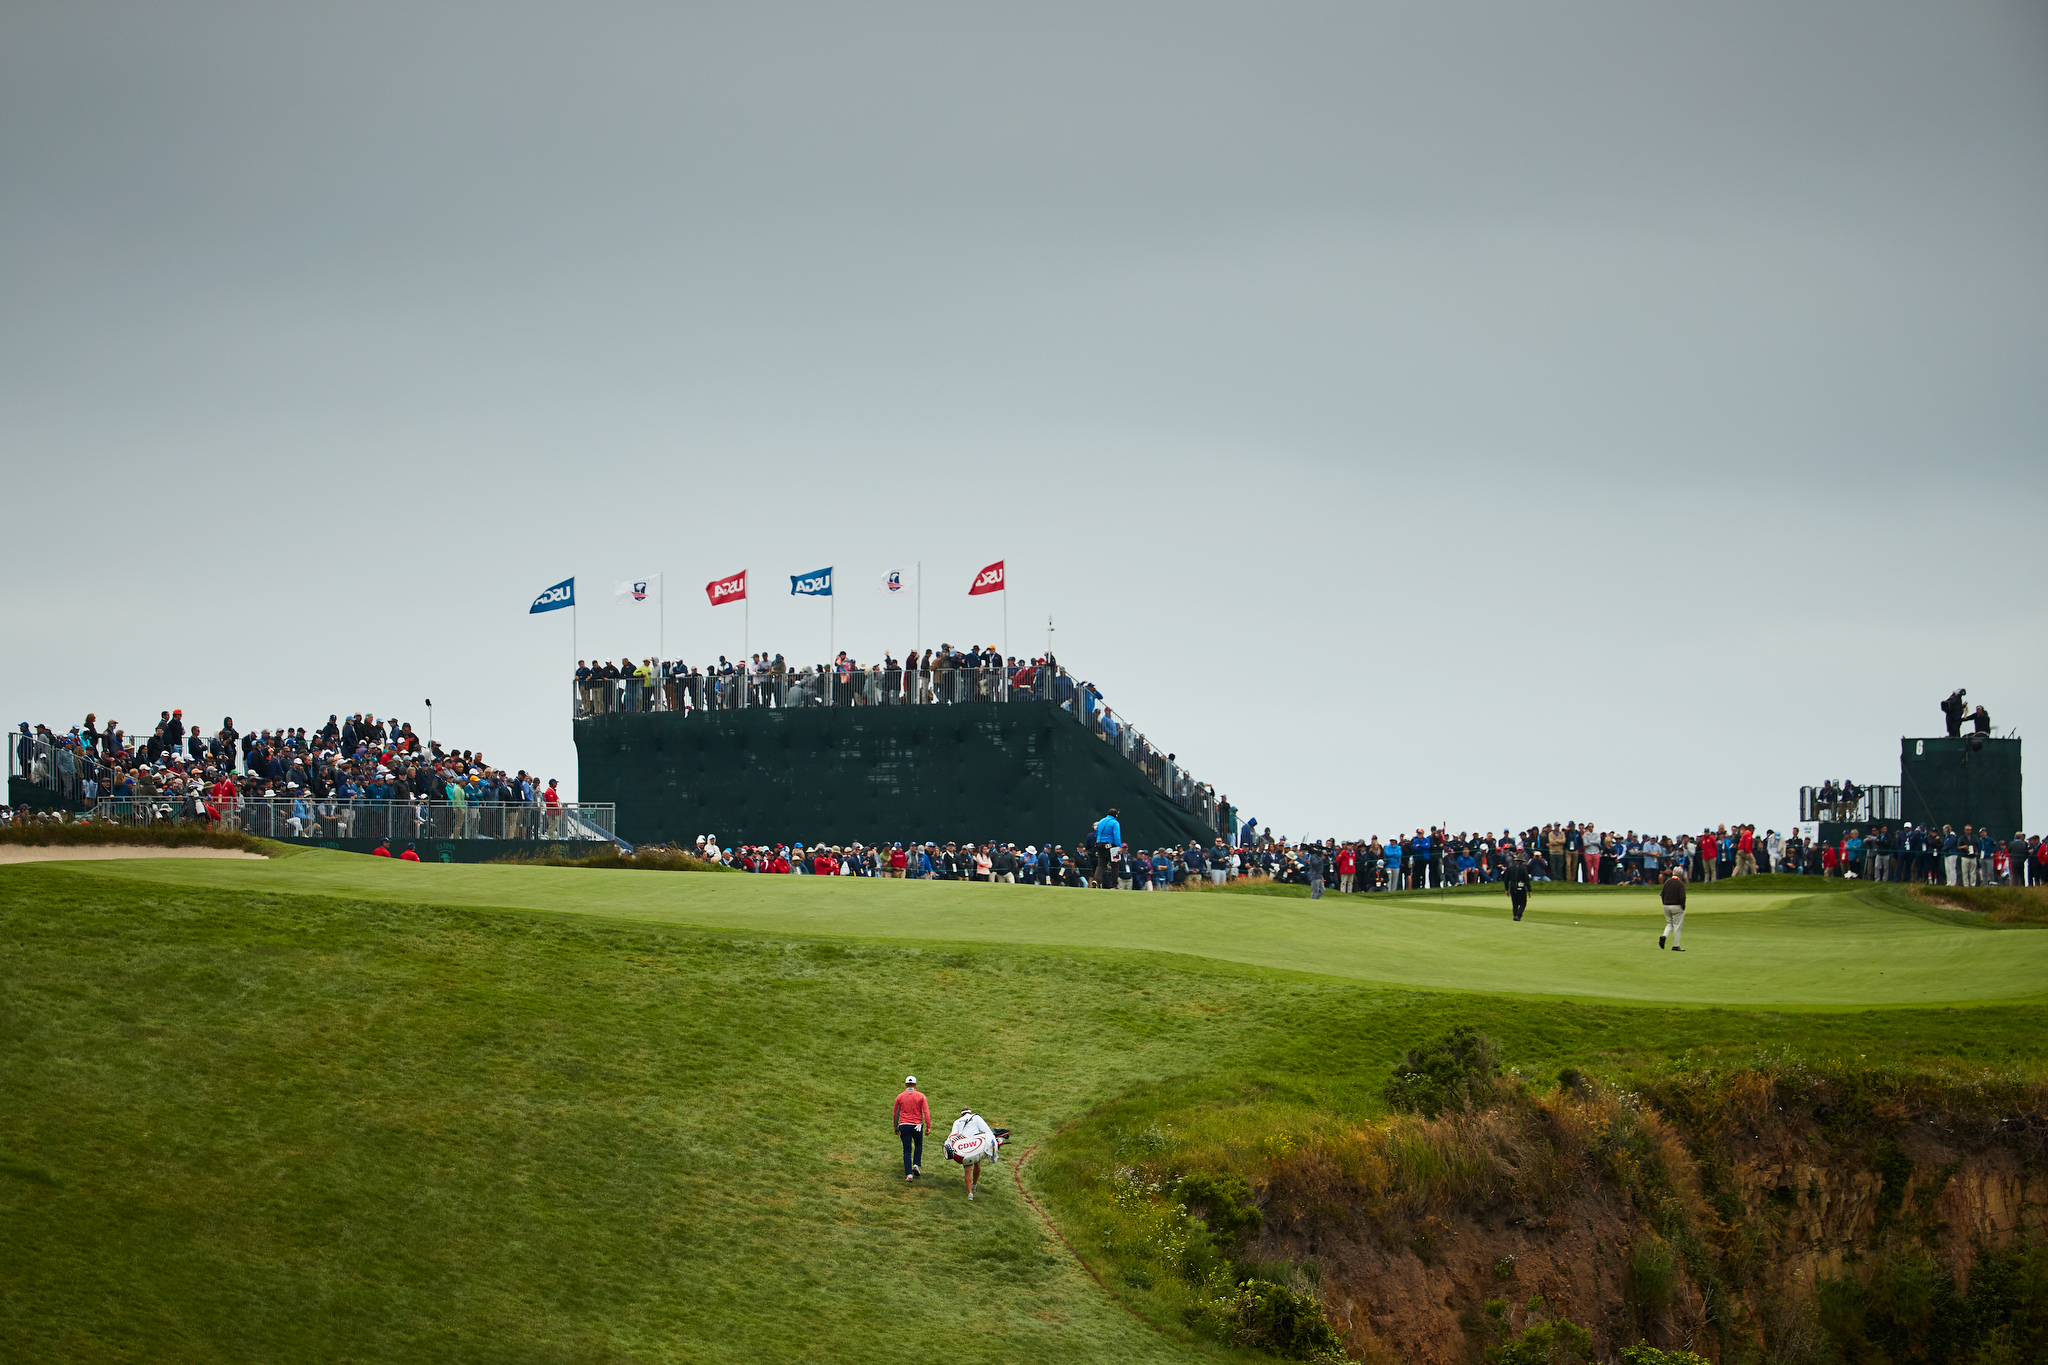 Gary Woodland at the 6th during Sunday's final round.  Canon 1DXM2, EF 200-400mm f4 L.